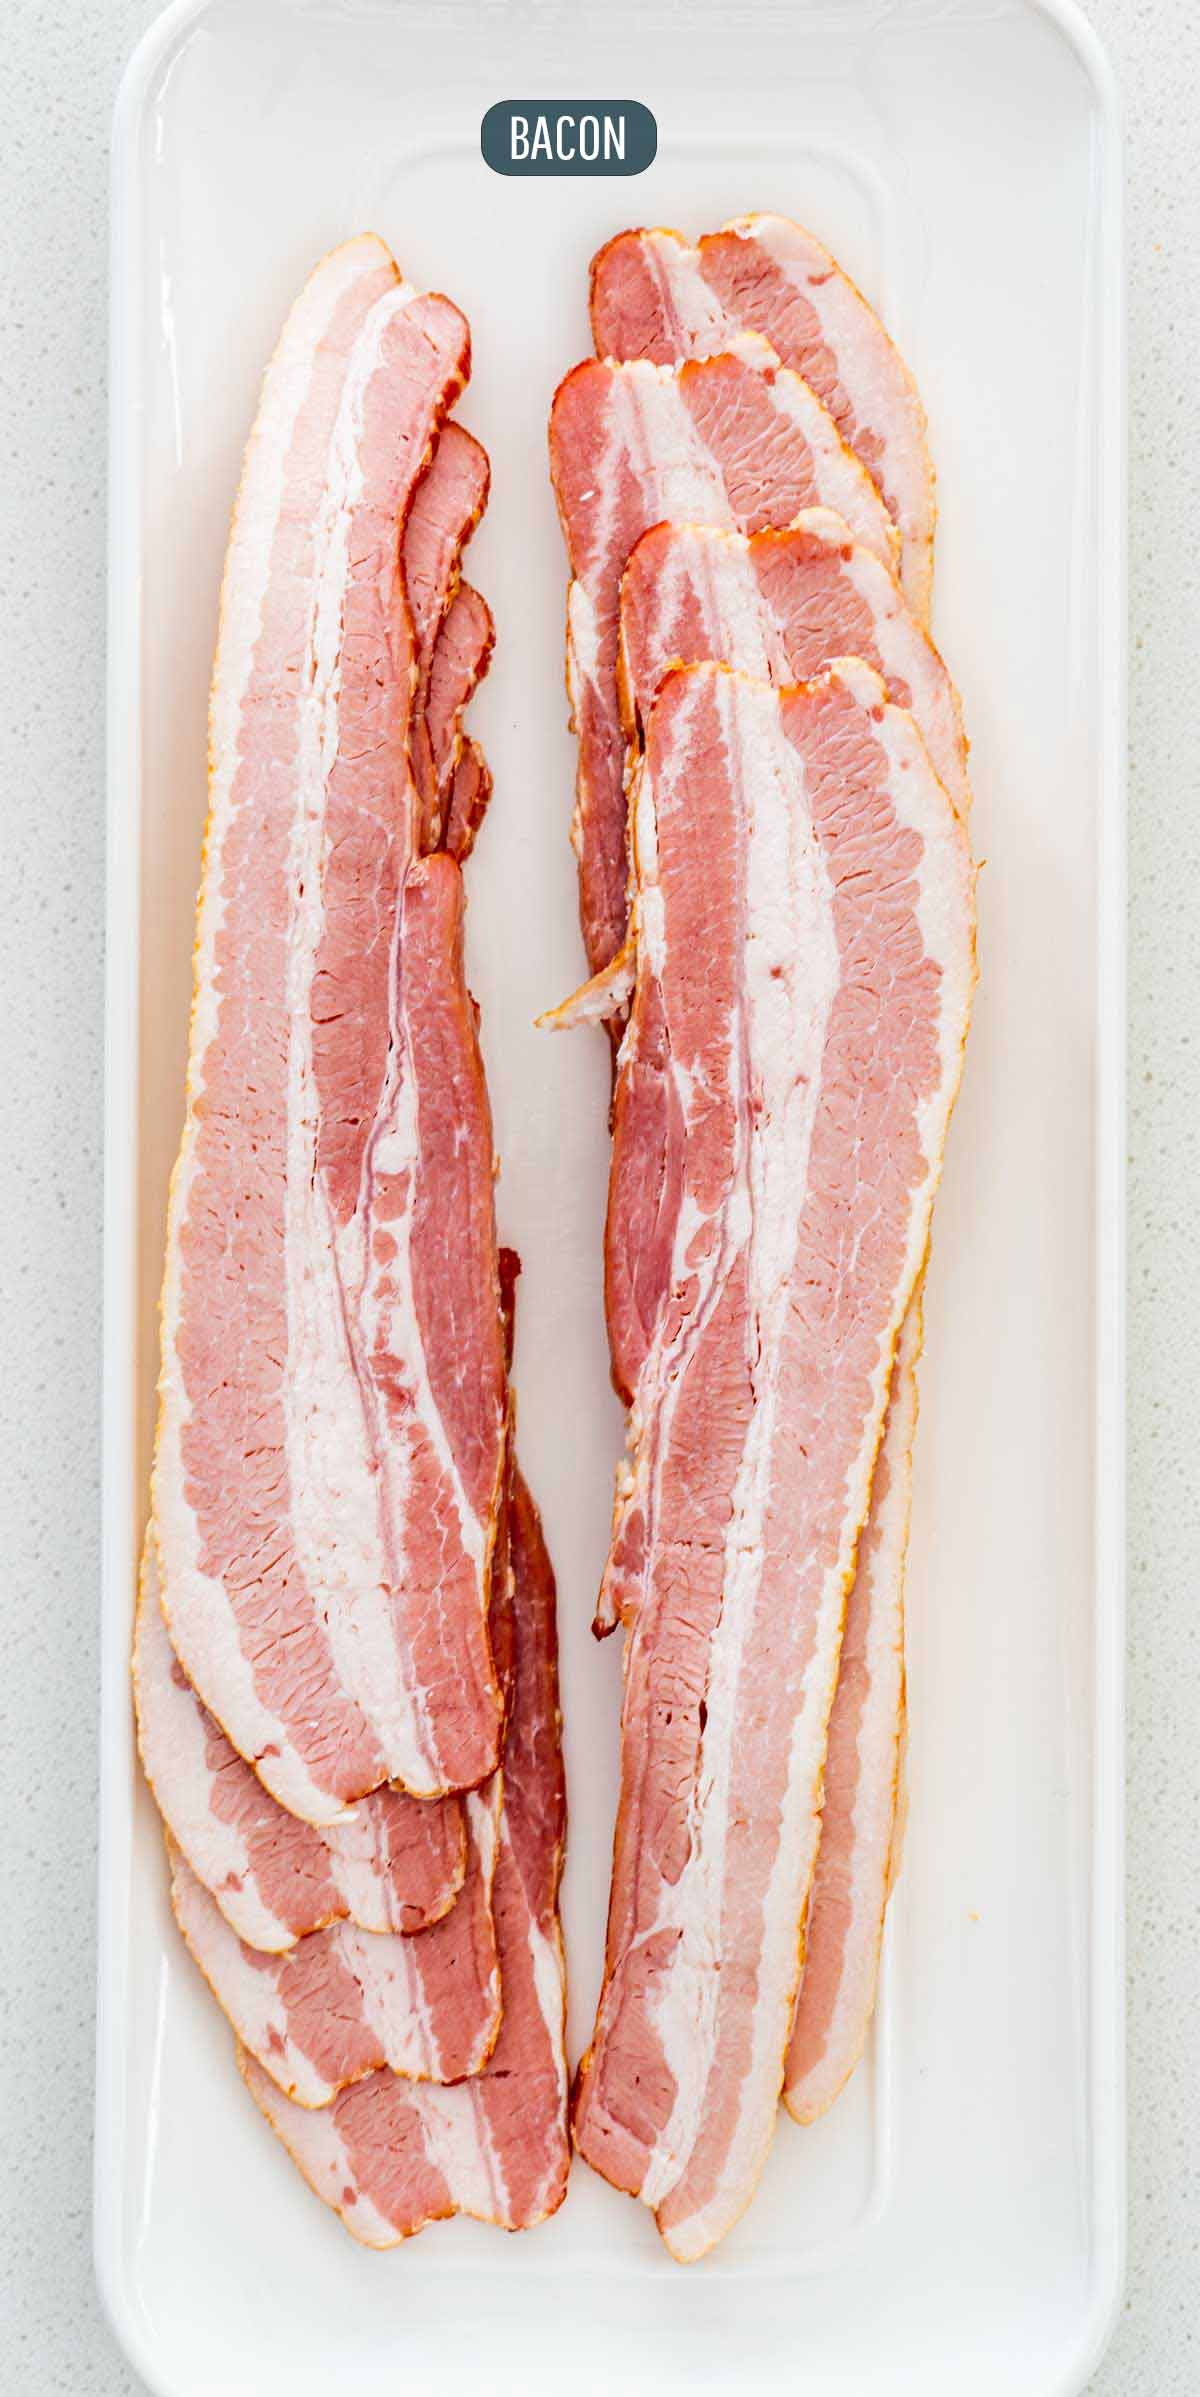 a long plate with strips of bacon on it.